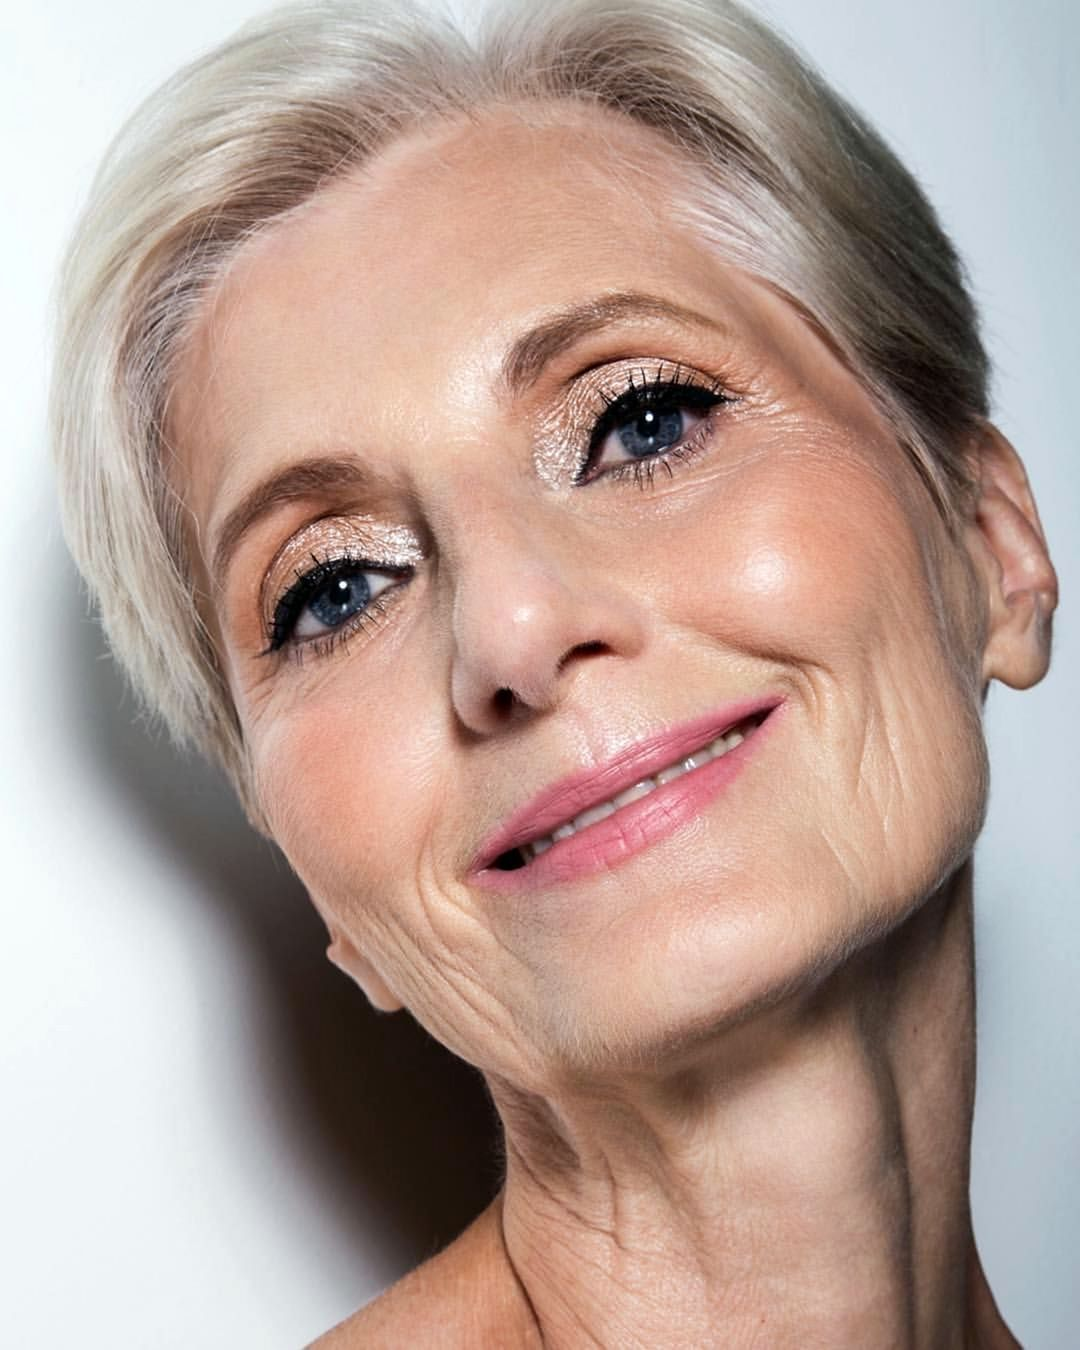 woman with mature skin and perfect makeup, after using an anti-ageing skincare routine.